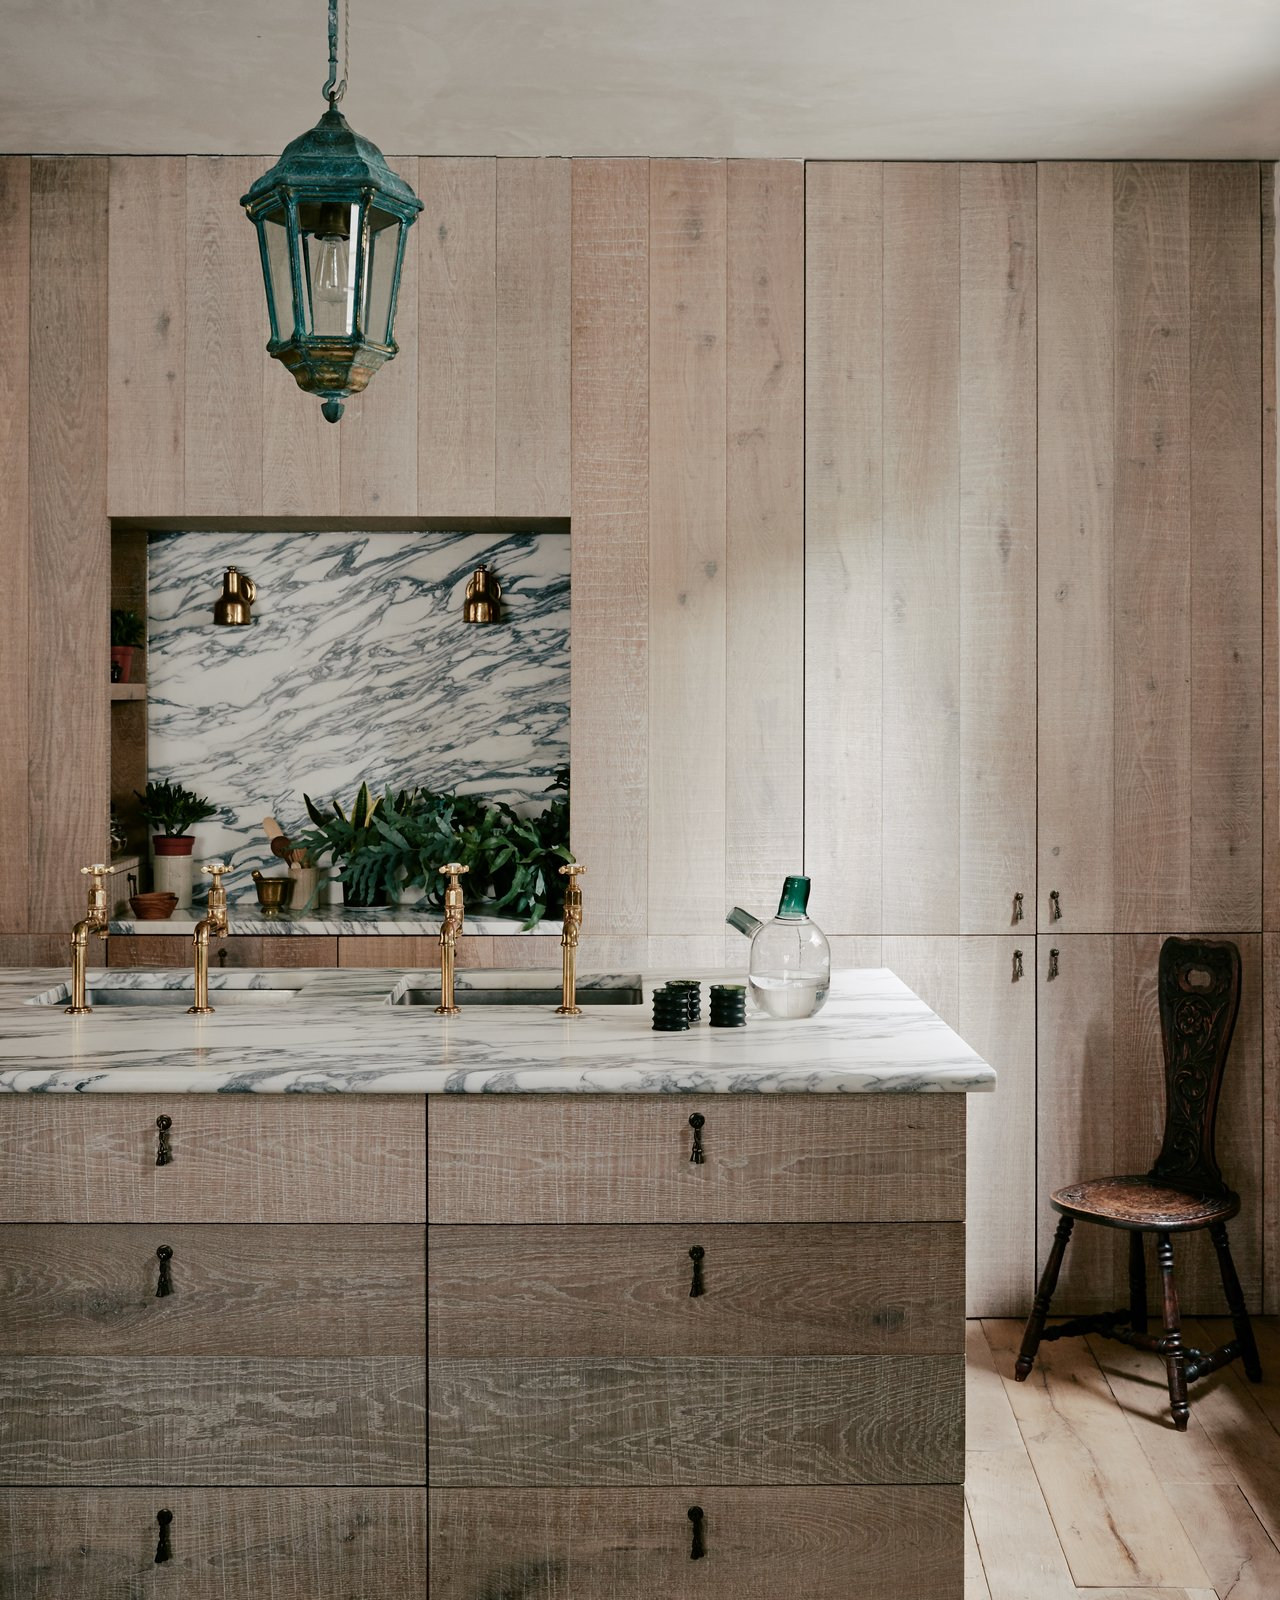 Kitchen, Wood, Marble, Light Hardwood, Marble, Undermount, Wall, and Pendant Lush plants and cool shades of blue and green bring a little nature into this chic, urban home.  Kitchen Light Hardwood Wall Marble Photos from An Architect Couple Give This 18th-Century Townhouse a Sumptuous Refresh